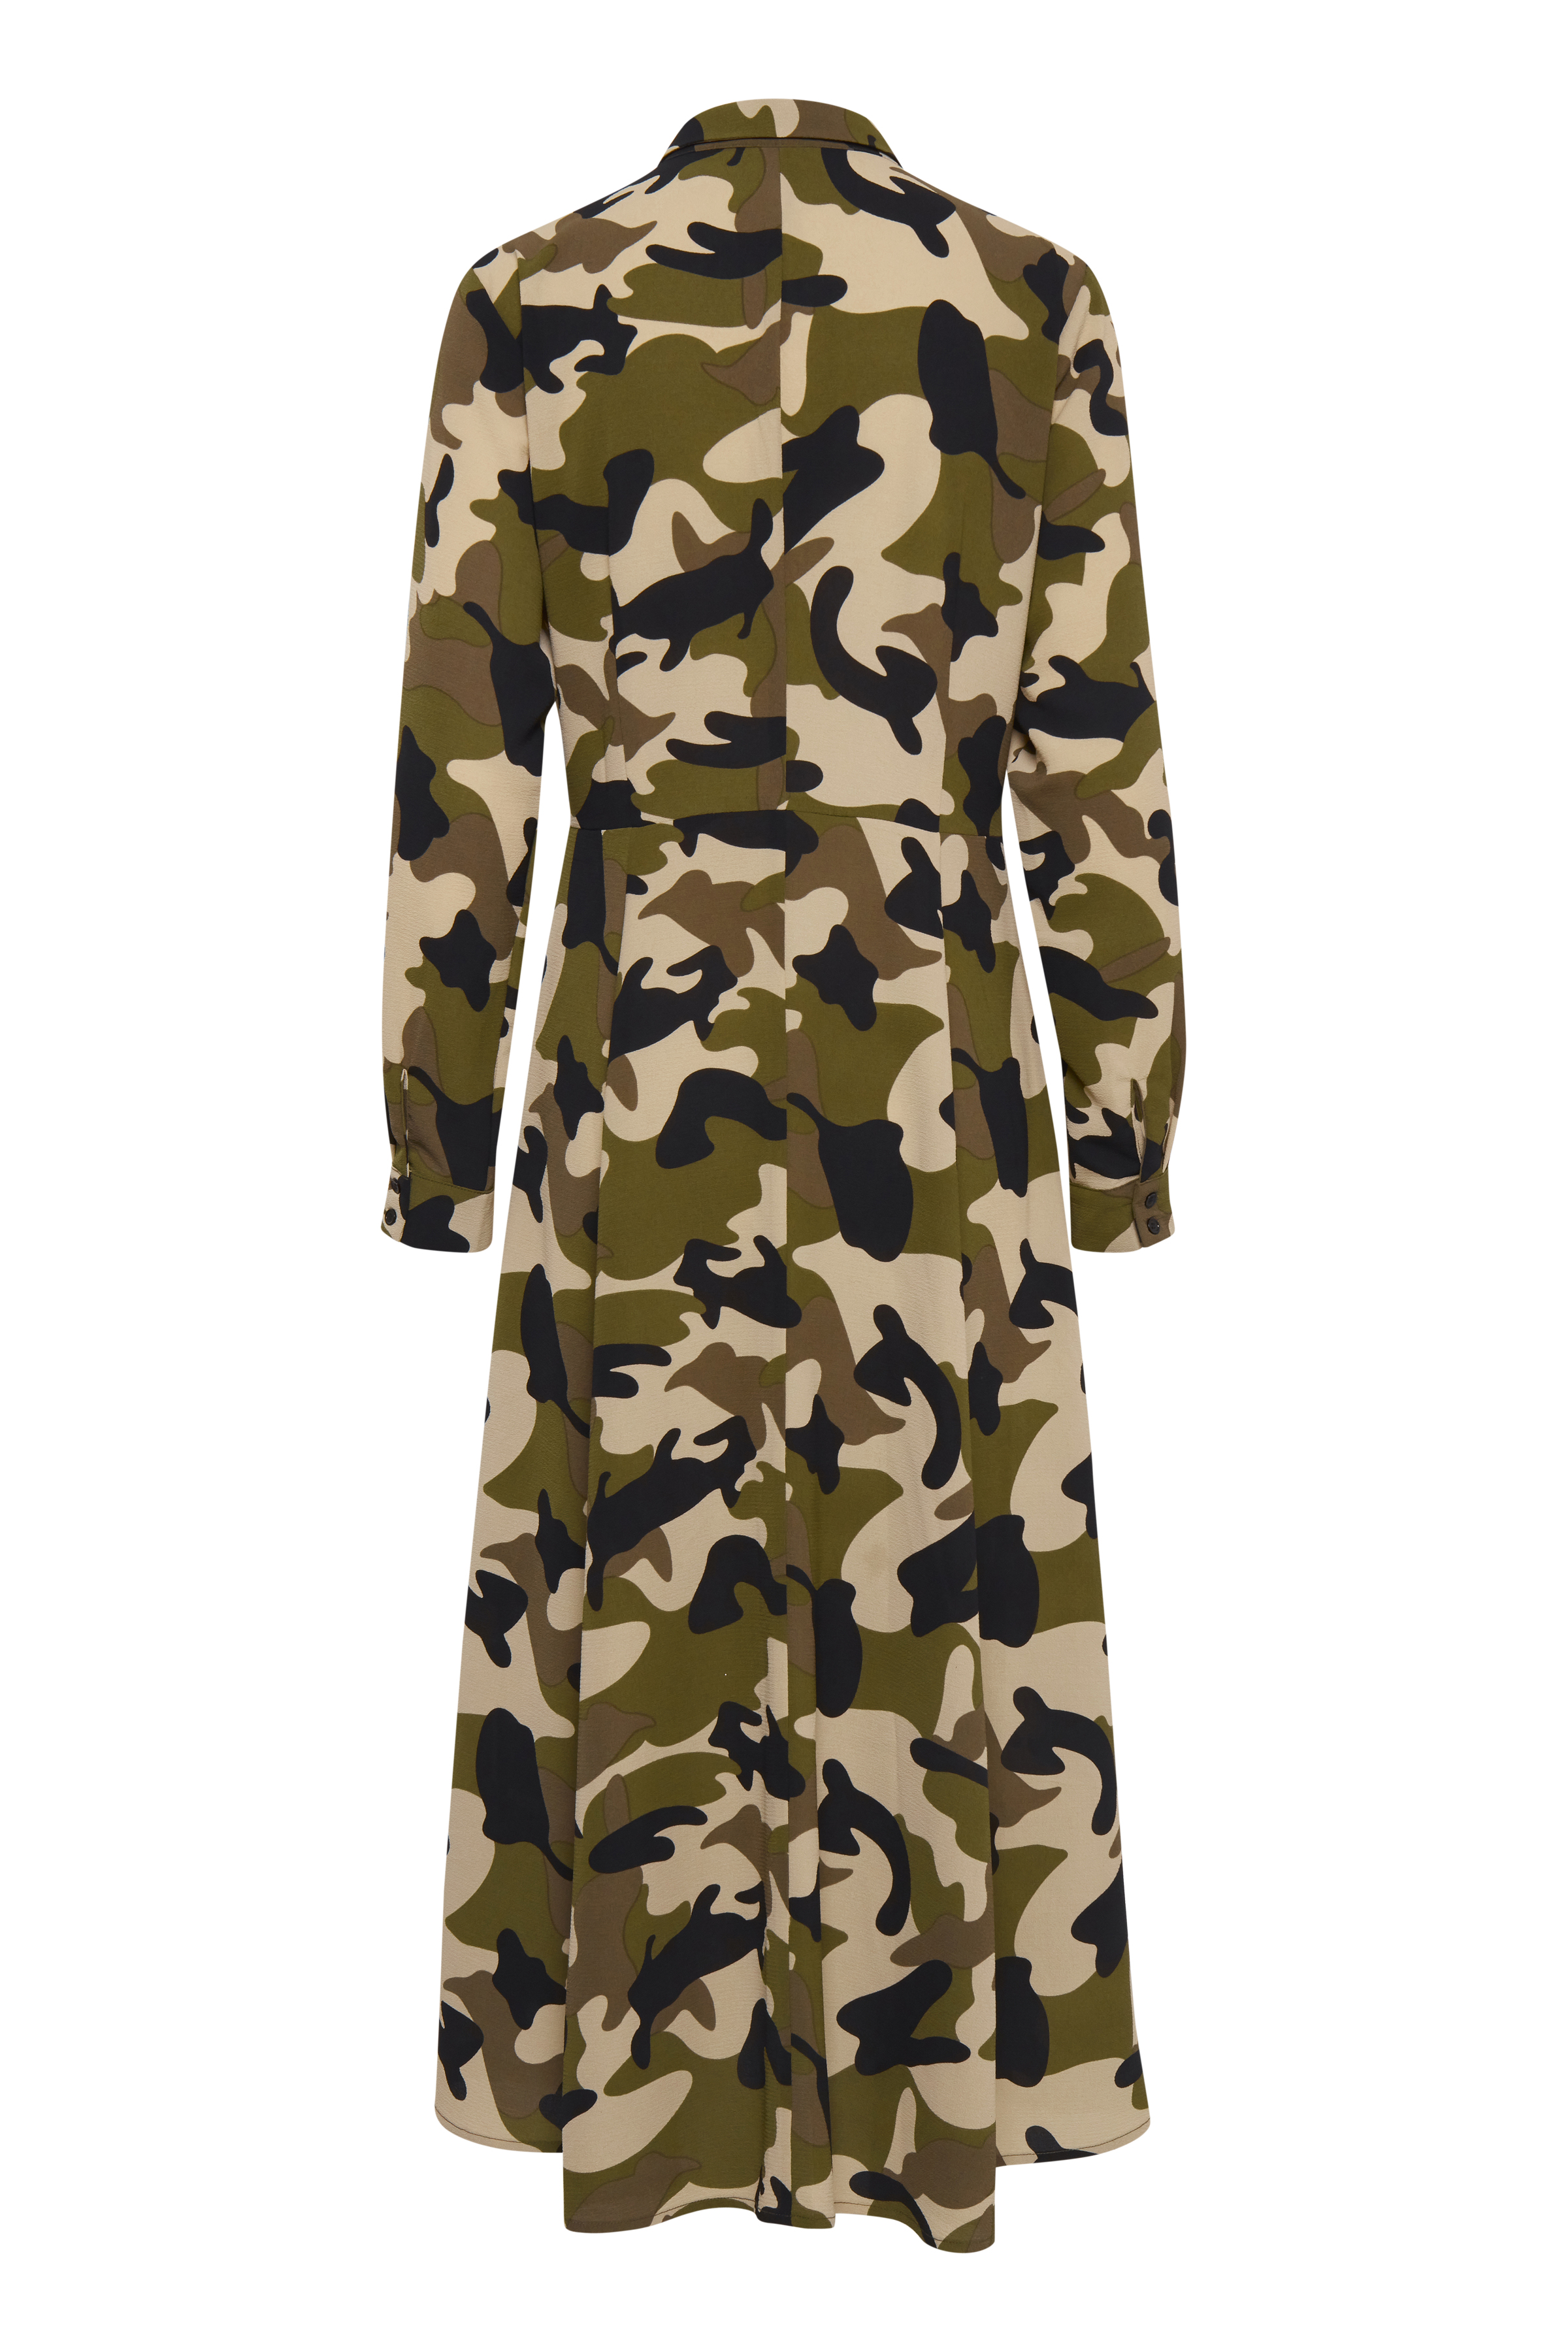 Camo combi 1 Dress from b.young – Buy Camo combi 1 Dress from size 34-42 here